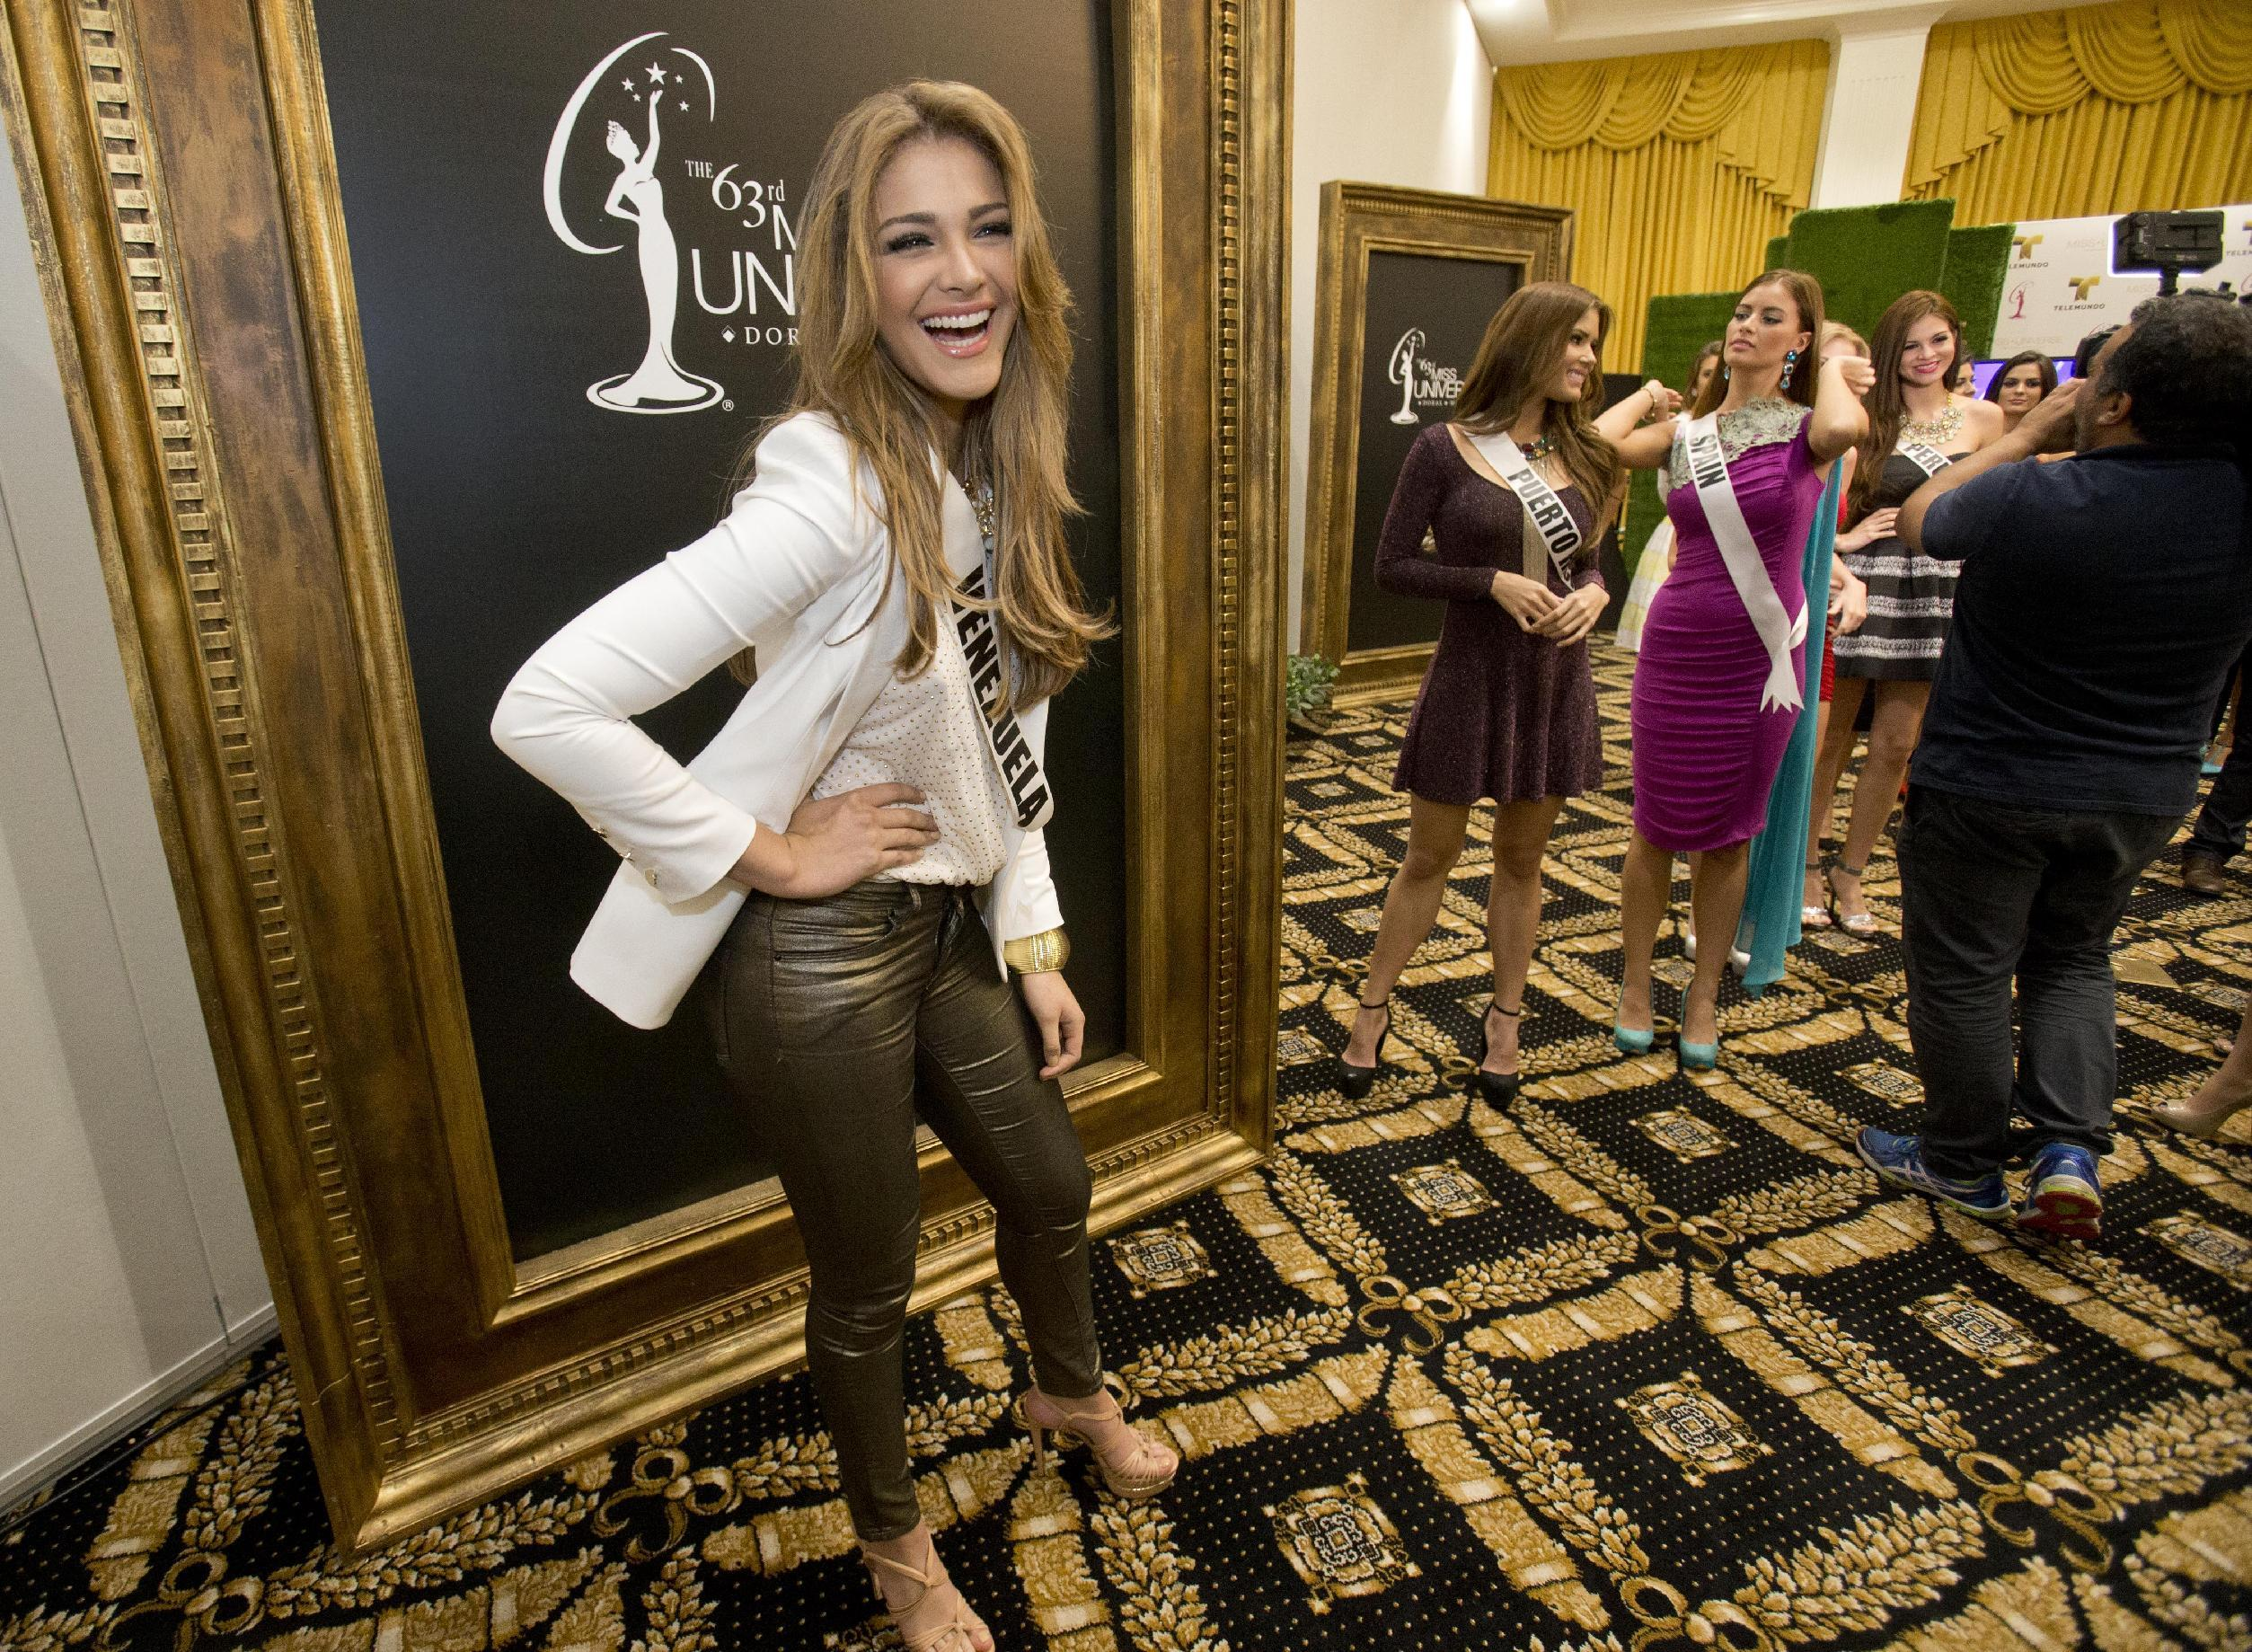 Miss Universe: New friends, countless dresses and 1 crown